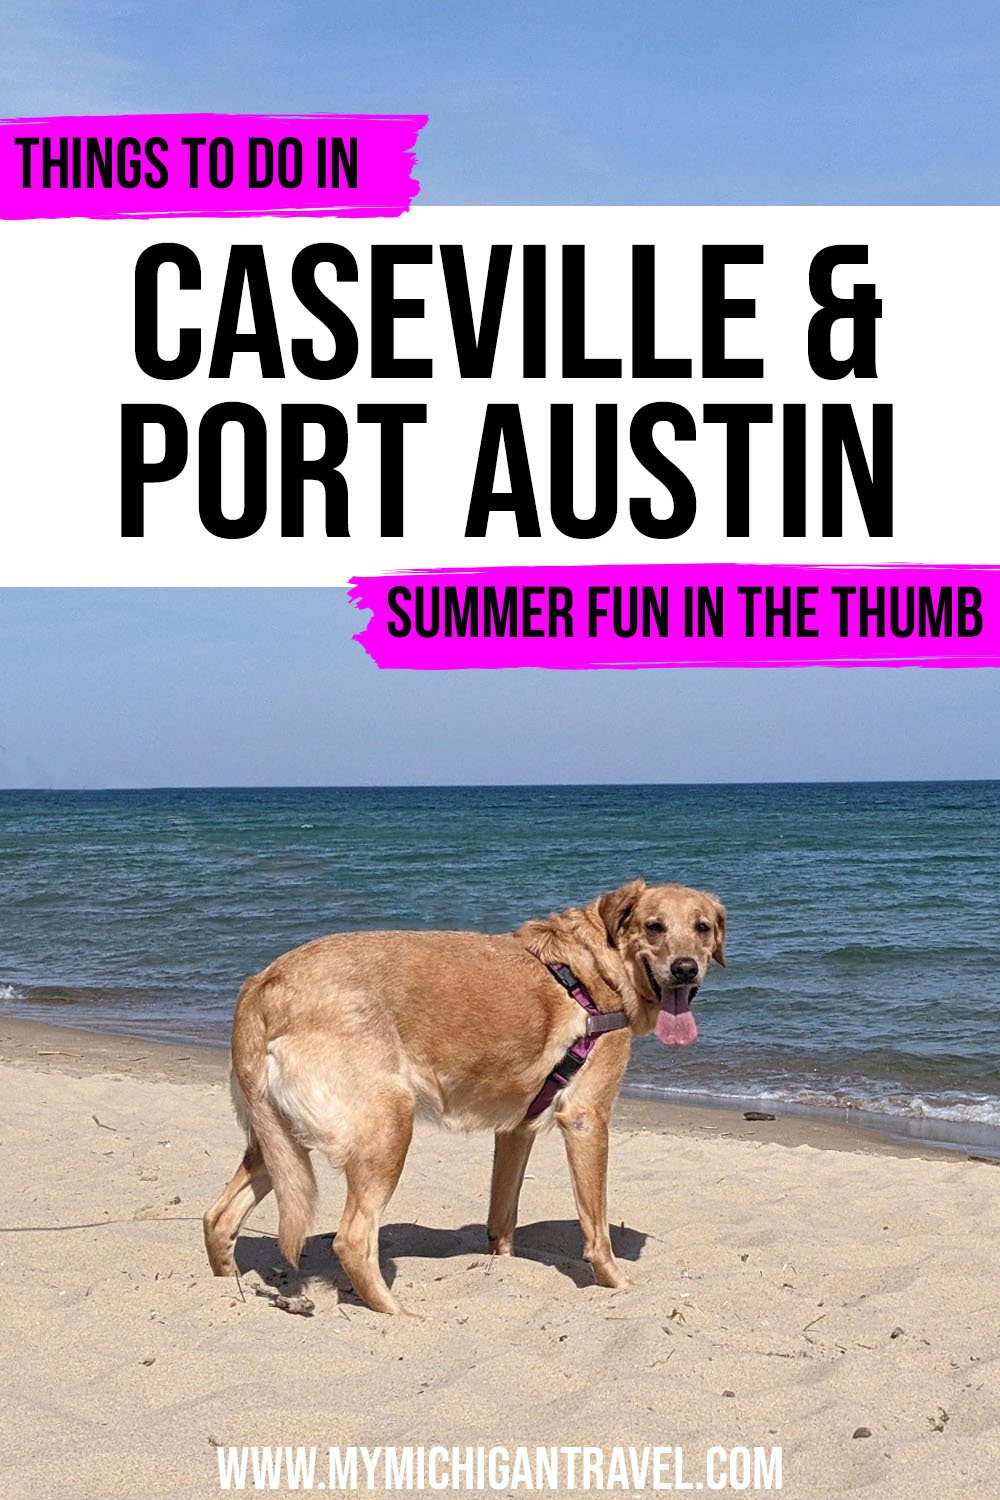 """Photo of a brown labrador retriever standing on a beach with turquoise water stretching out to the horizon behind her with text overlay reading """"Things to do in Caseville & Port Austin - summer fun in the thumb"""